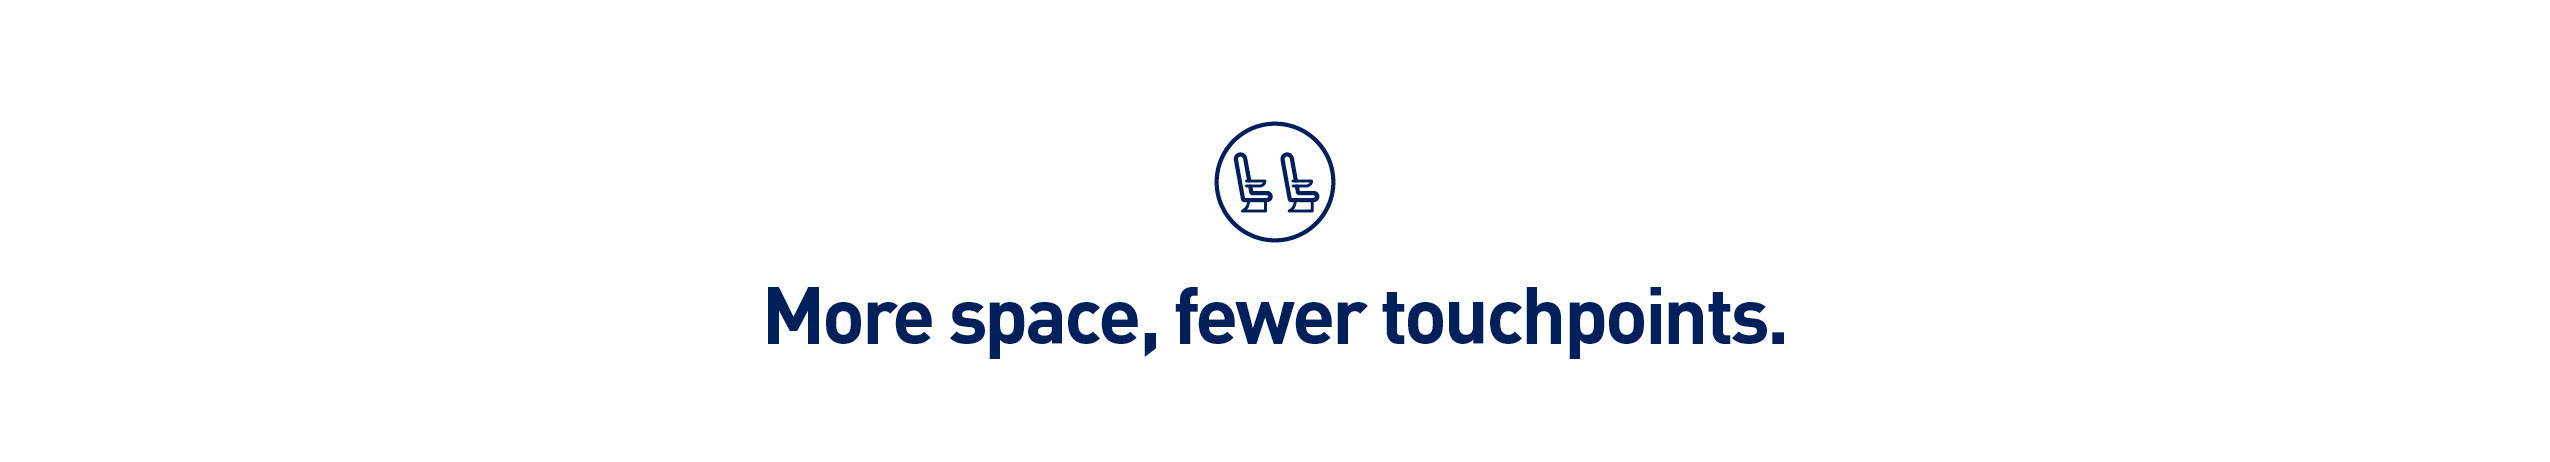 more space fewer touchpoints